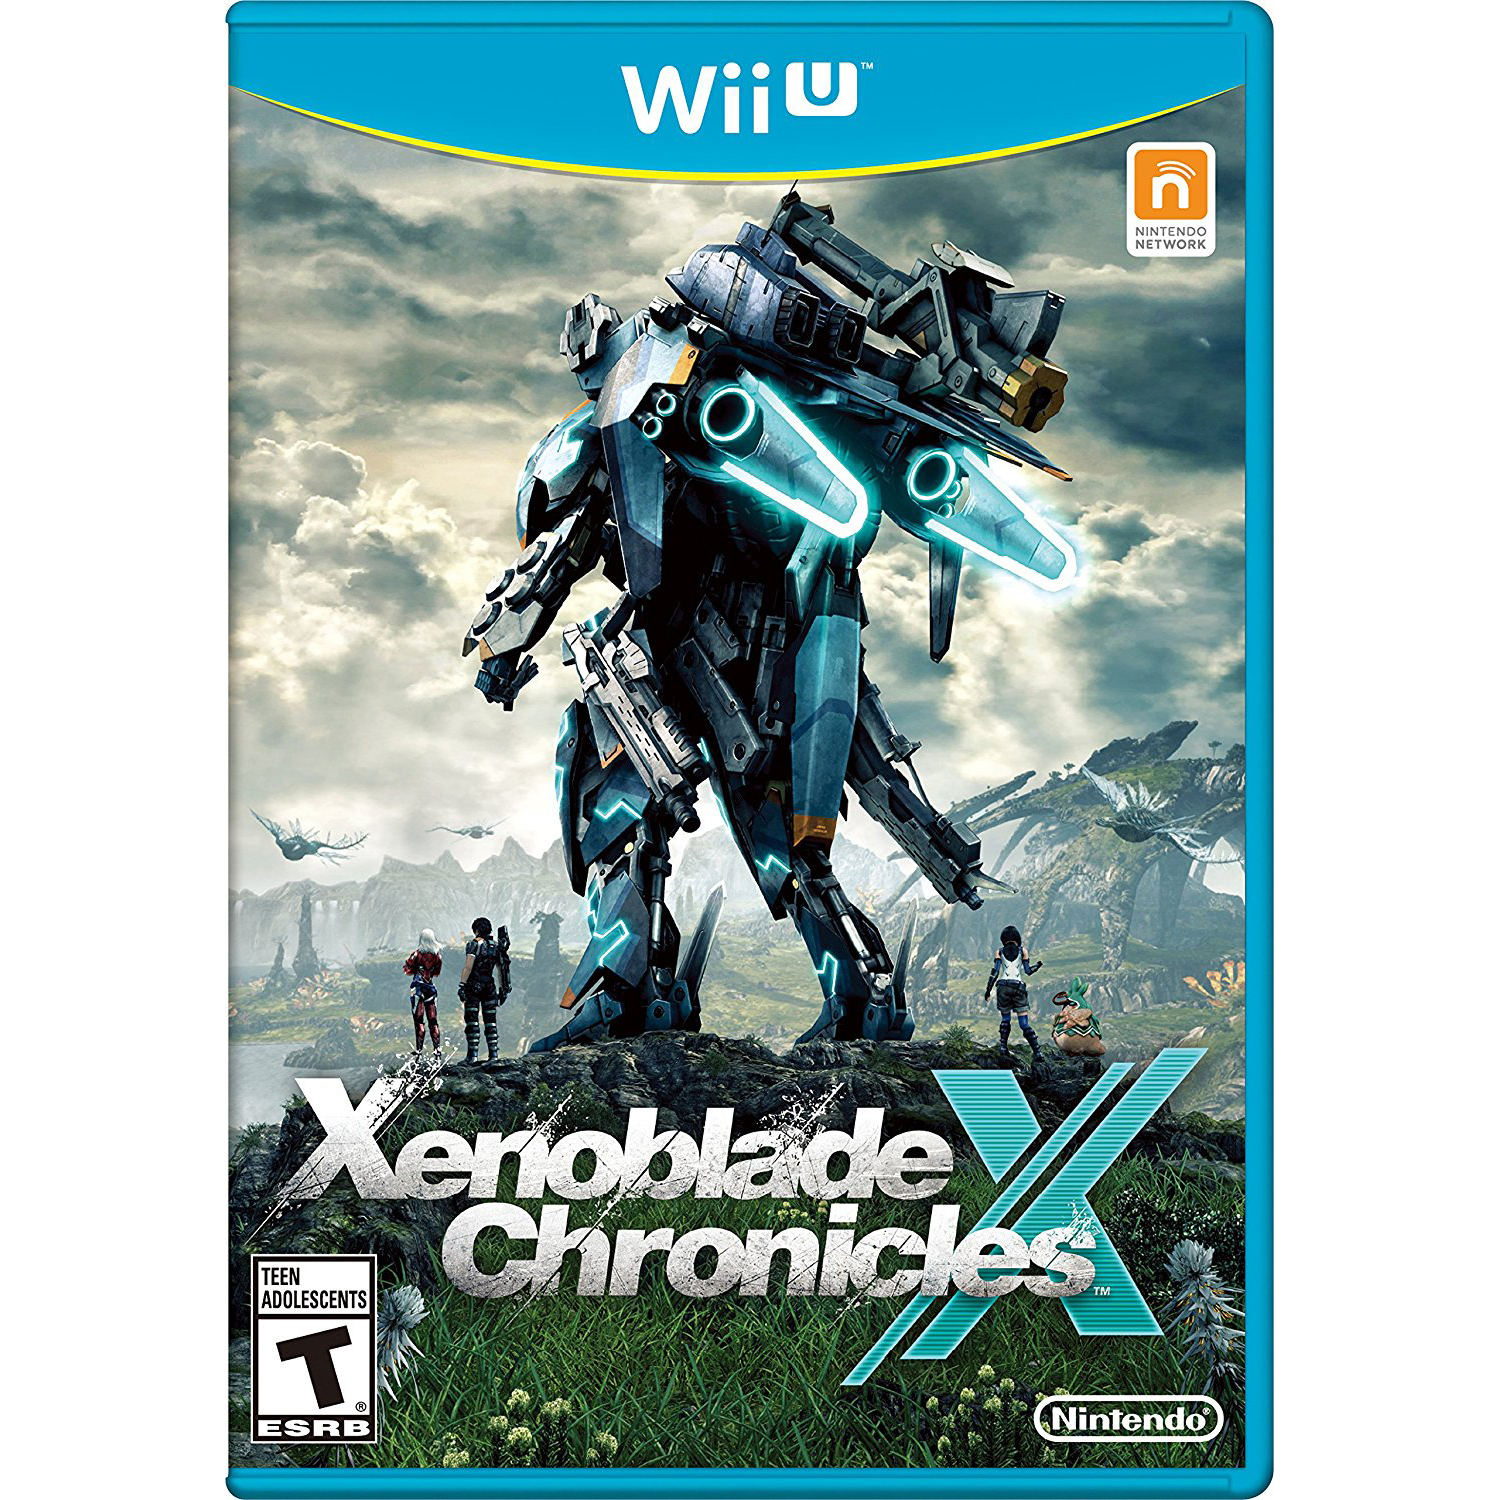 Xenoblade Chronicles™, Nintendo, WIIU, [Digital Download], 0004549666111